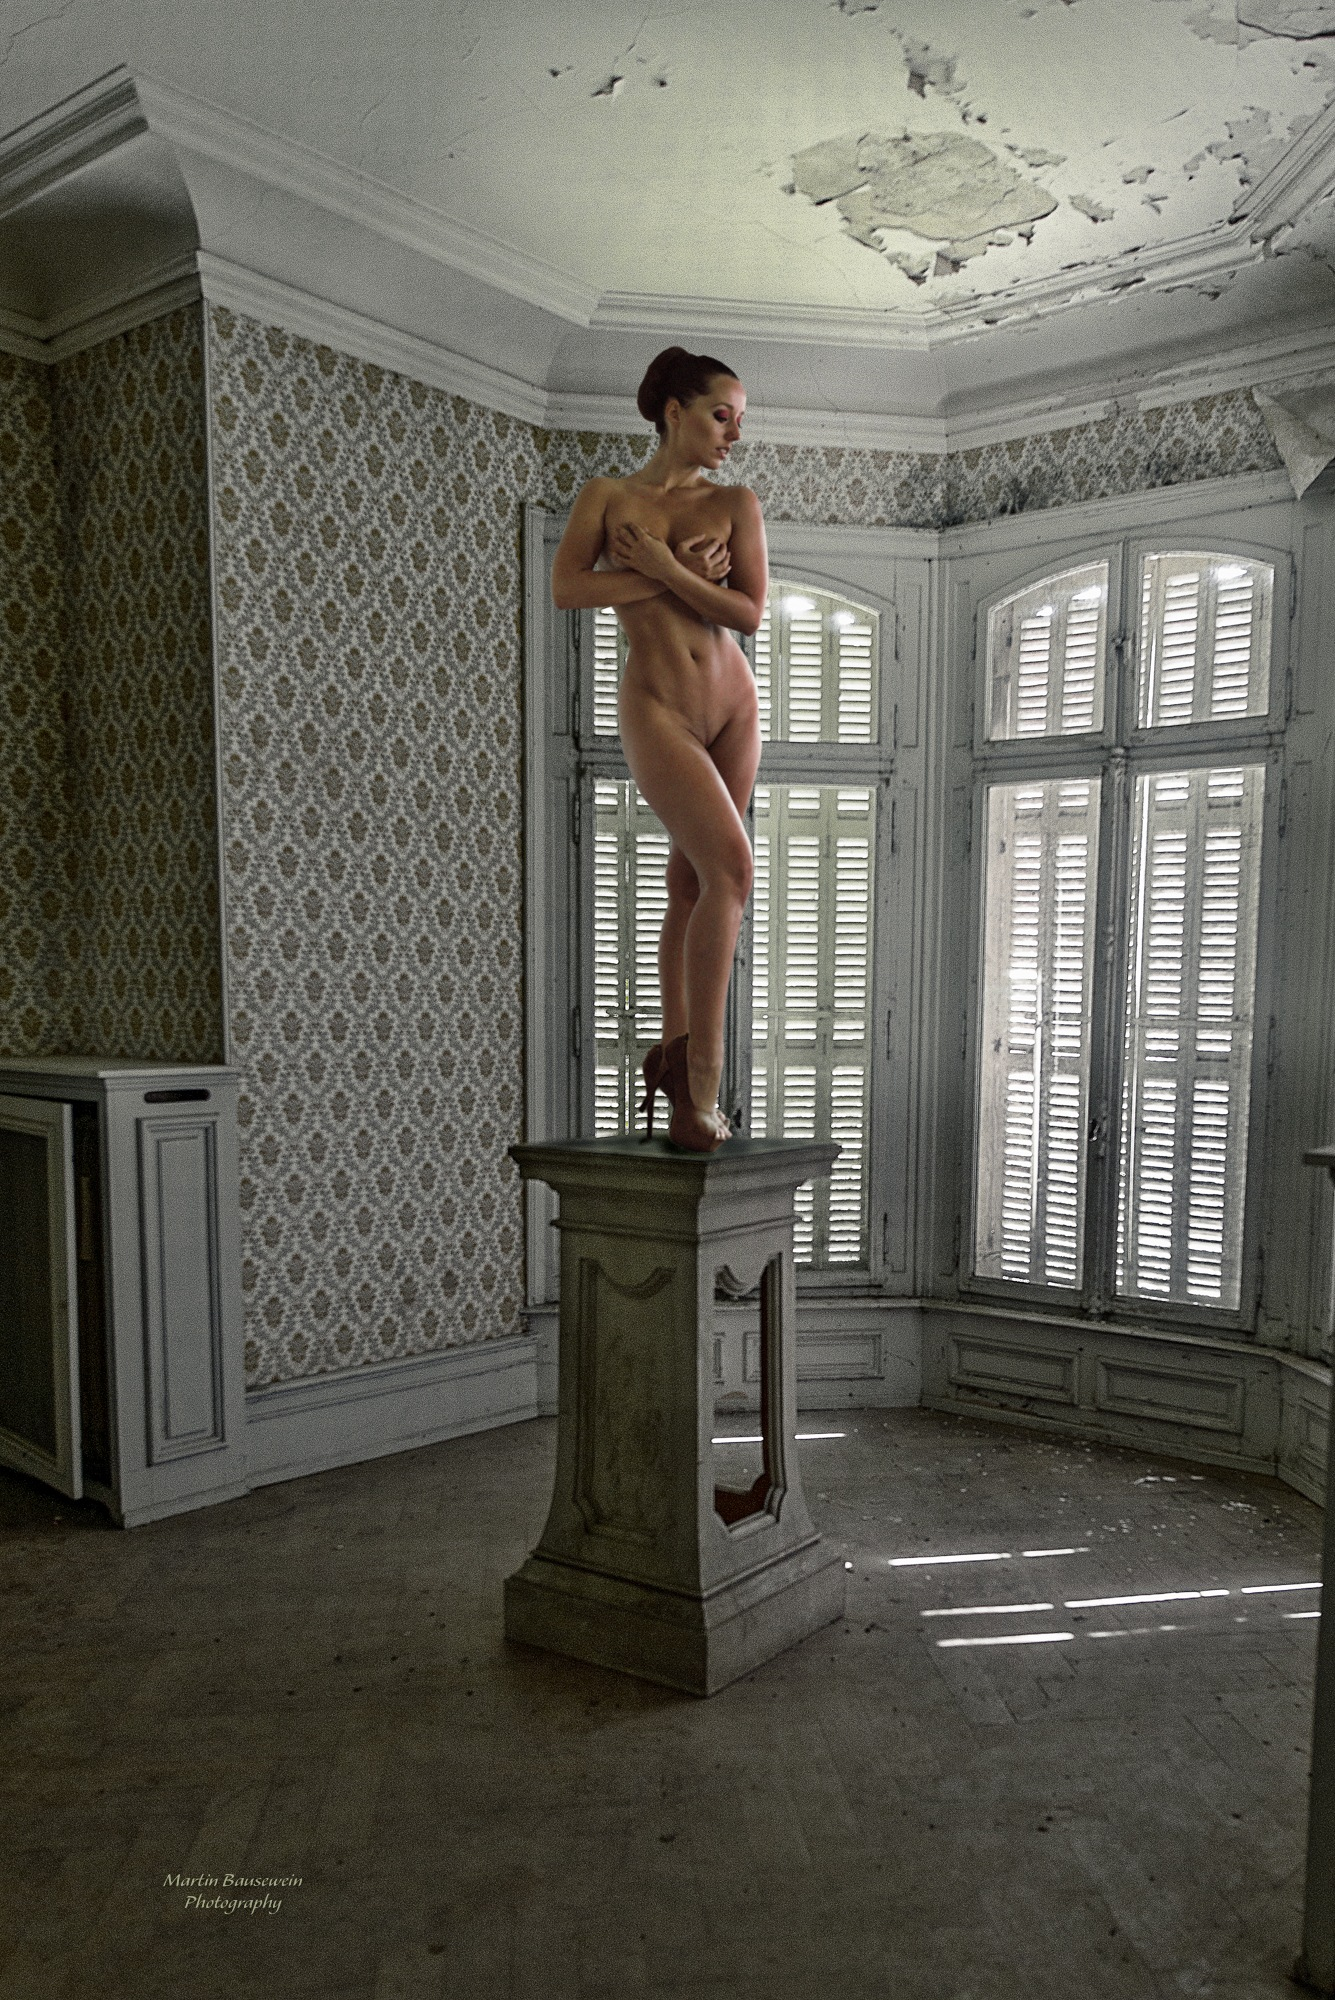 statue in a forgotten mansion by Martin Bausewein